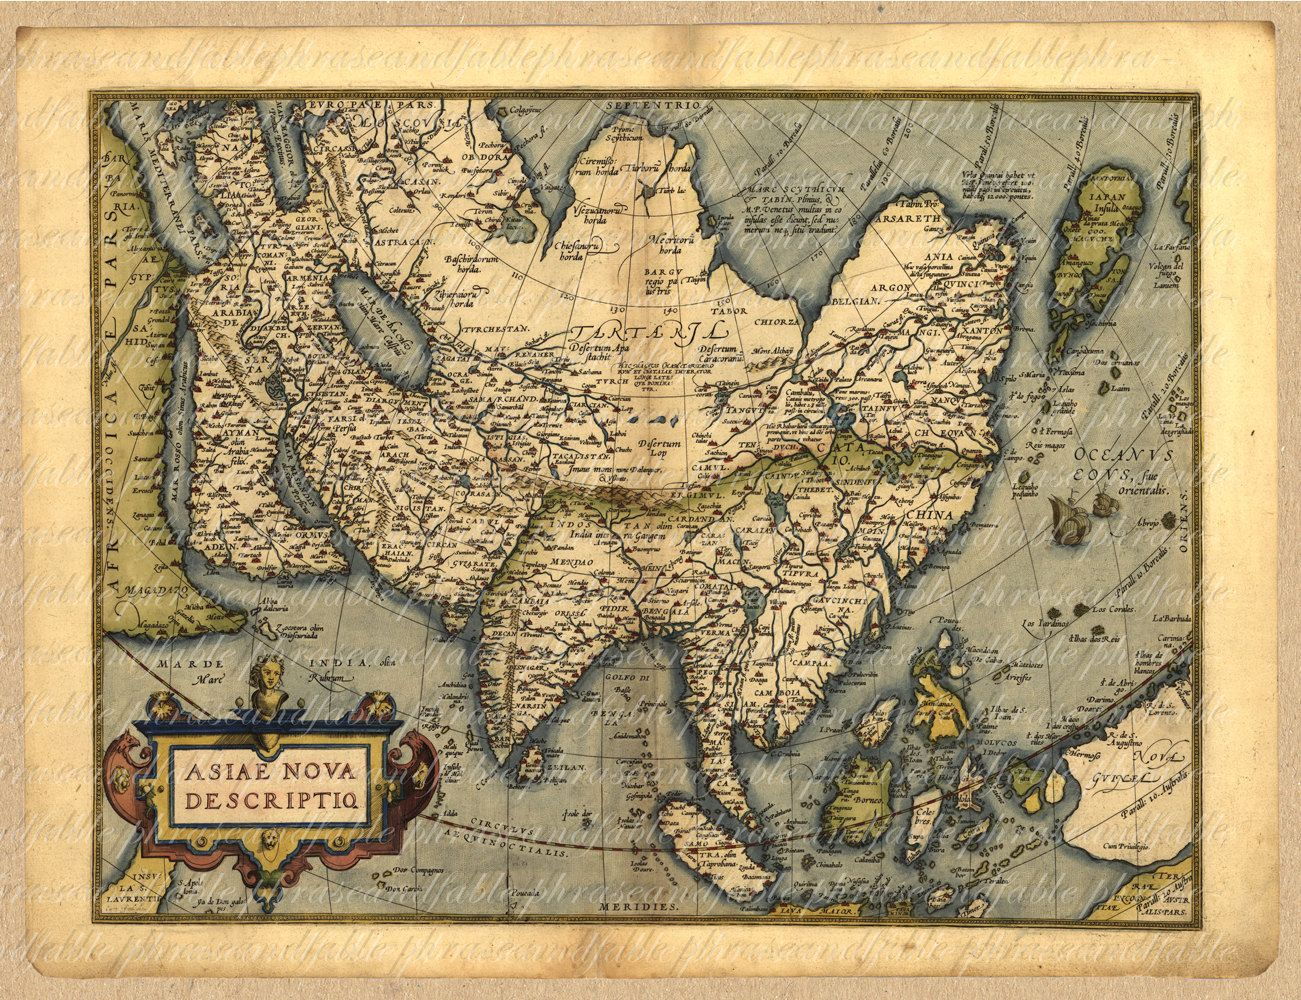 Map of asia from the 1500s japan borneo new guinea china india map of asia from the 1500s japan borneo new guinea china india thailand russia arabia persia 036 ancient old world digital image download gumiabroncs Image collections